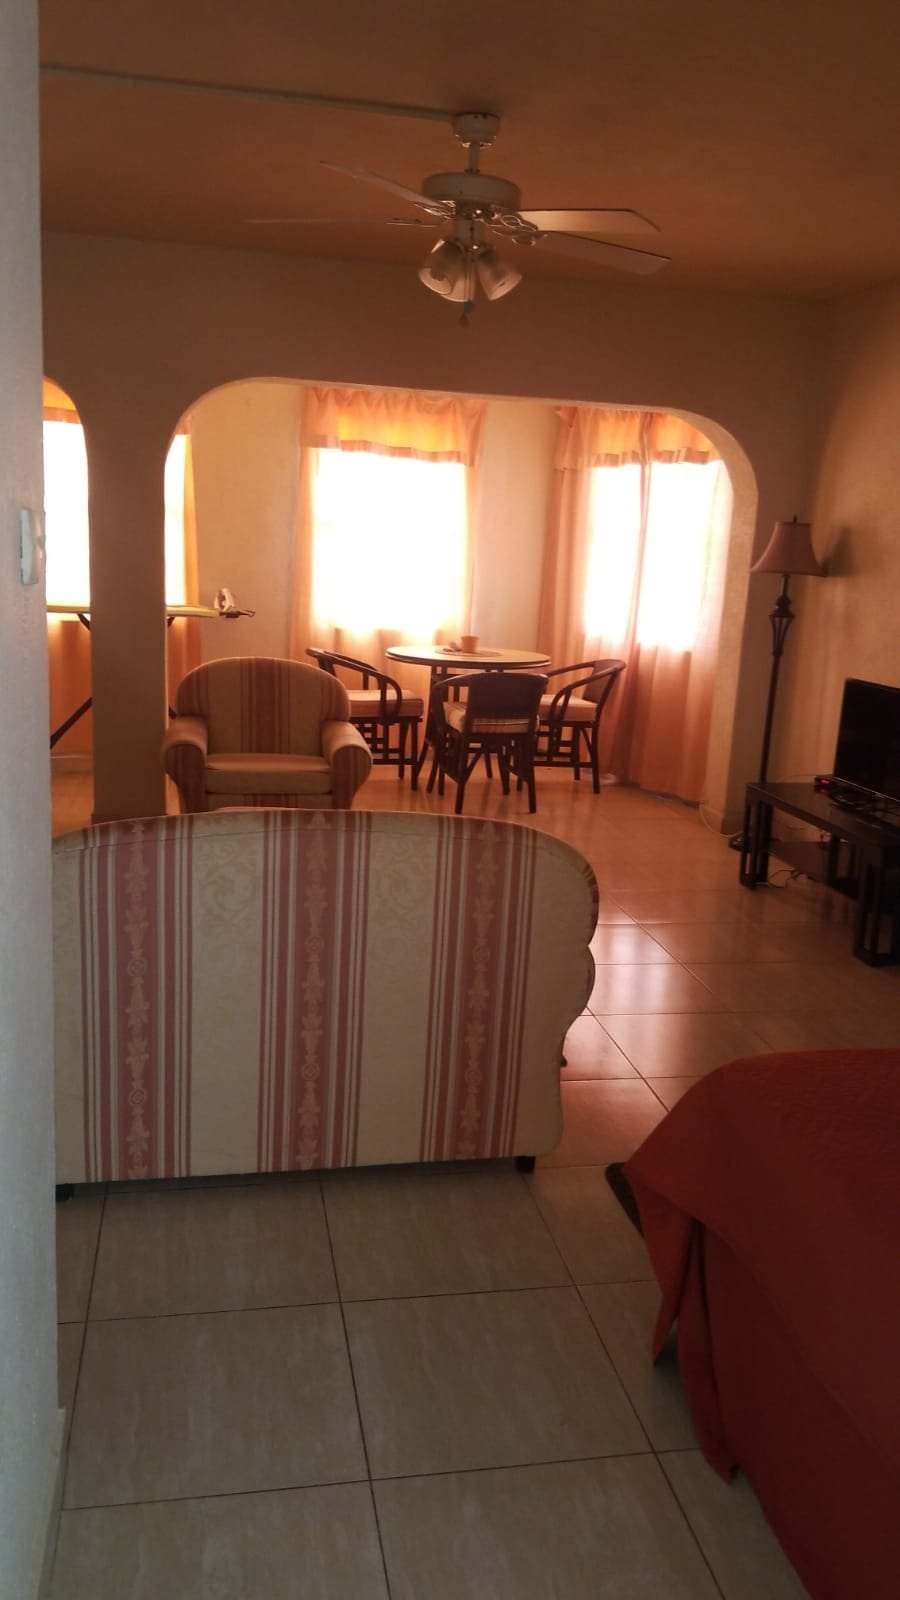 merriville-apartments-barbados-028